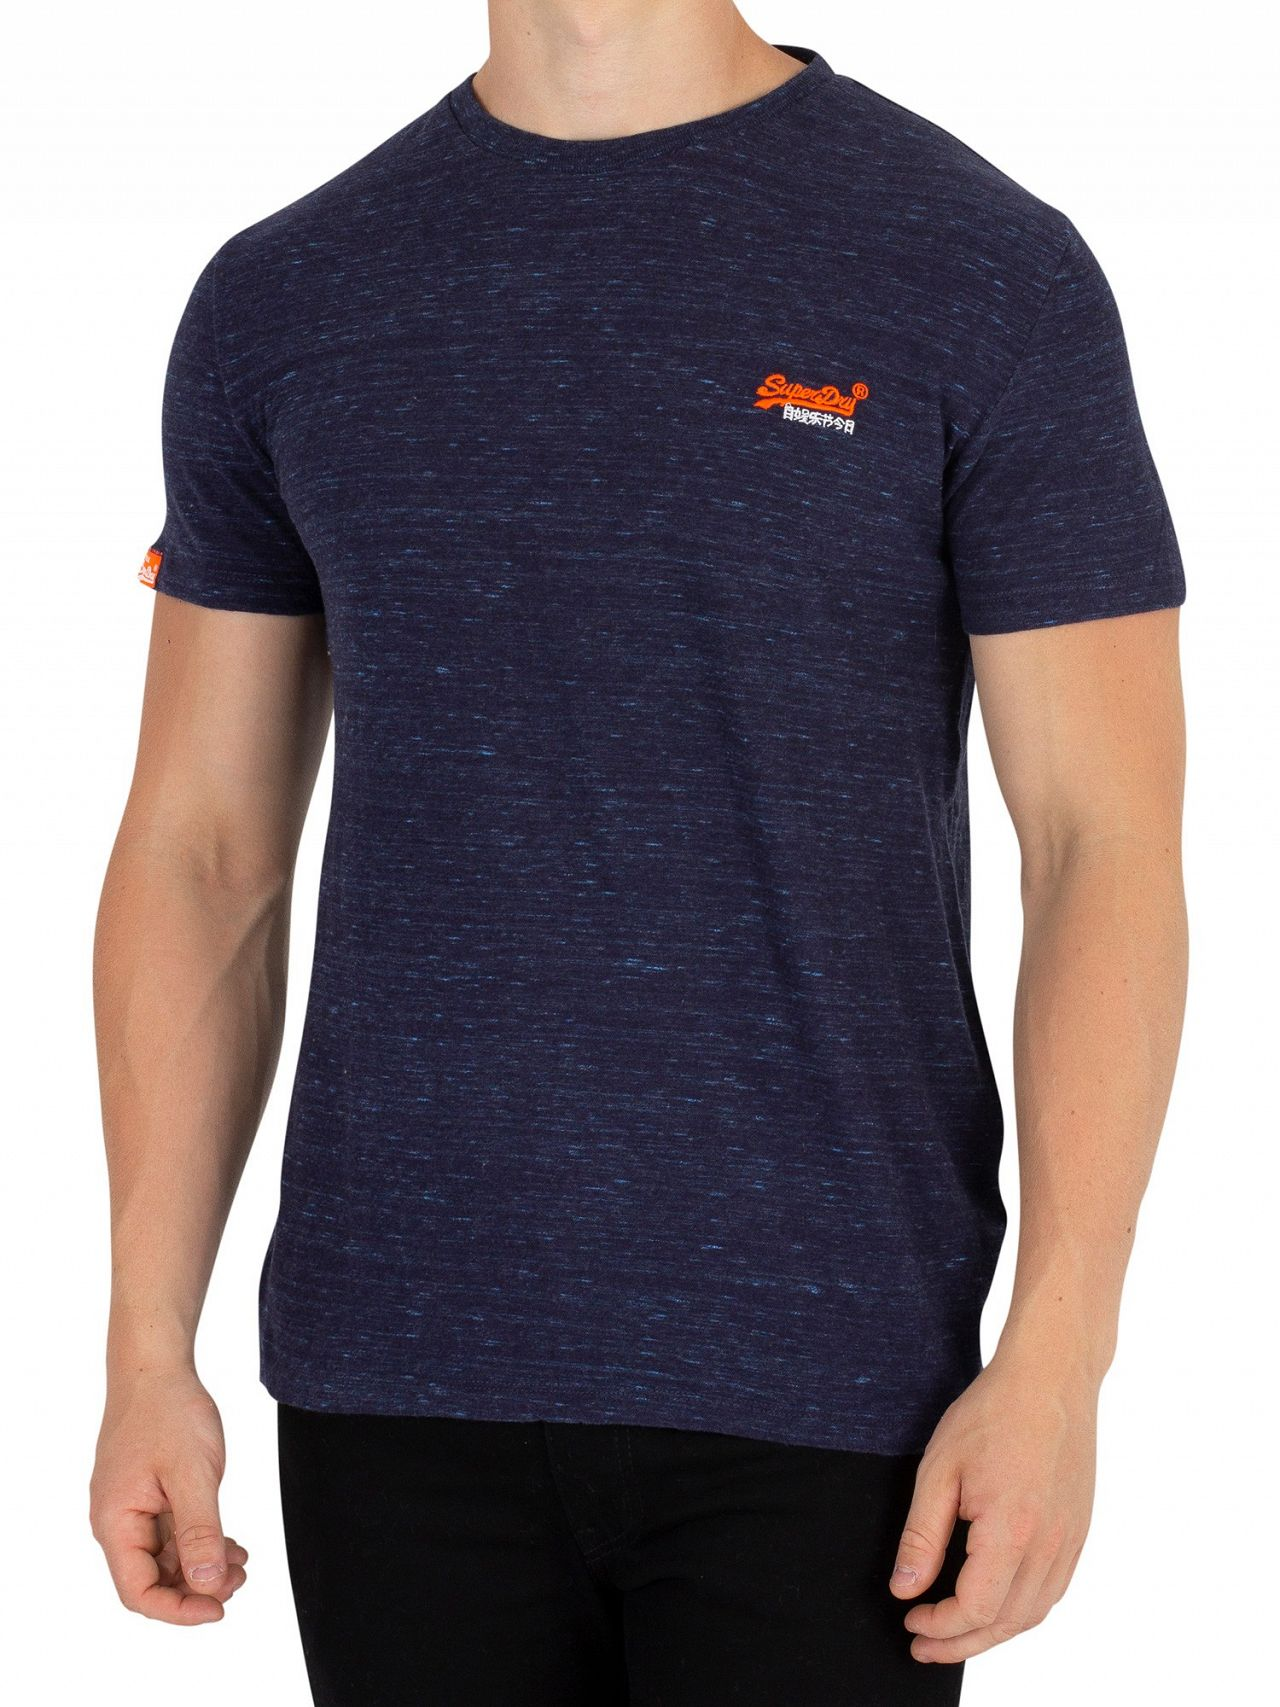 fe4c379d Superdry Montana Blue Space Dye Orange Label Vintage EMB T-Shirt ...